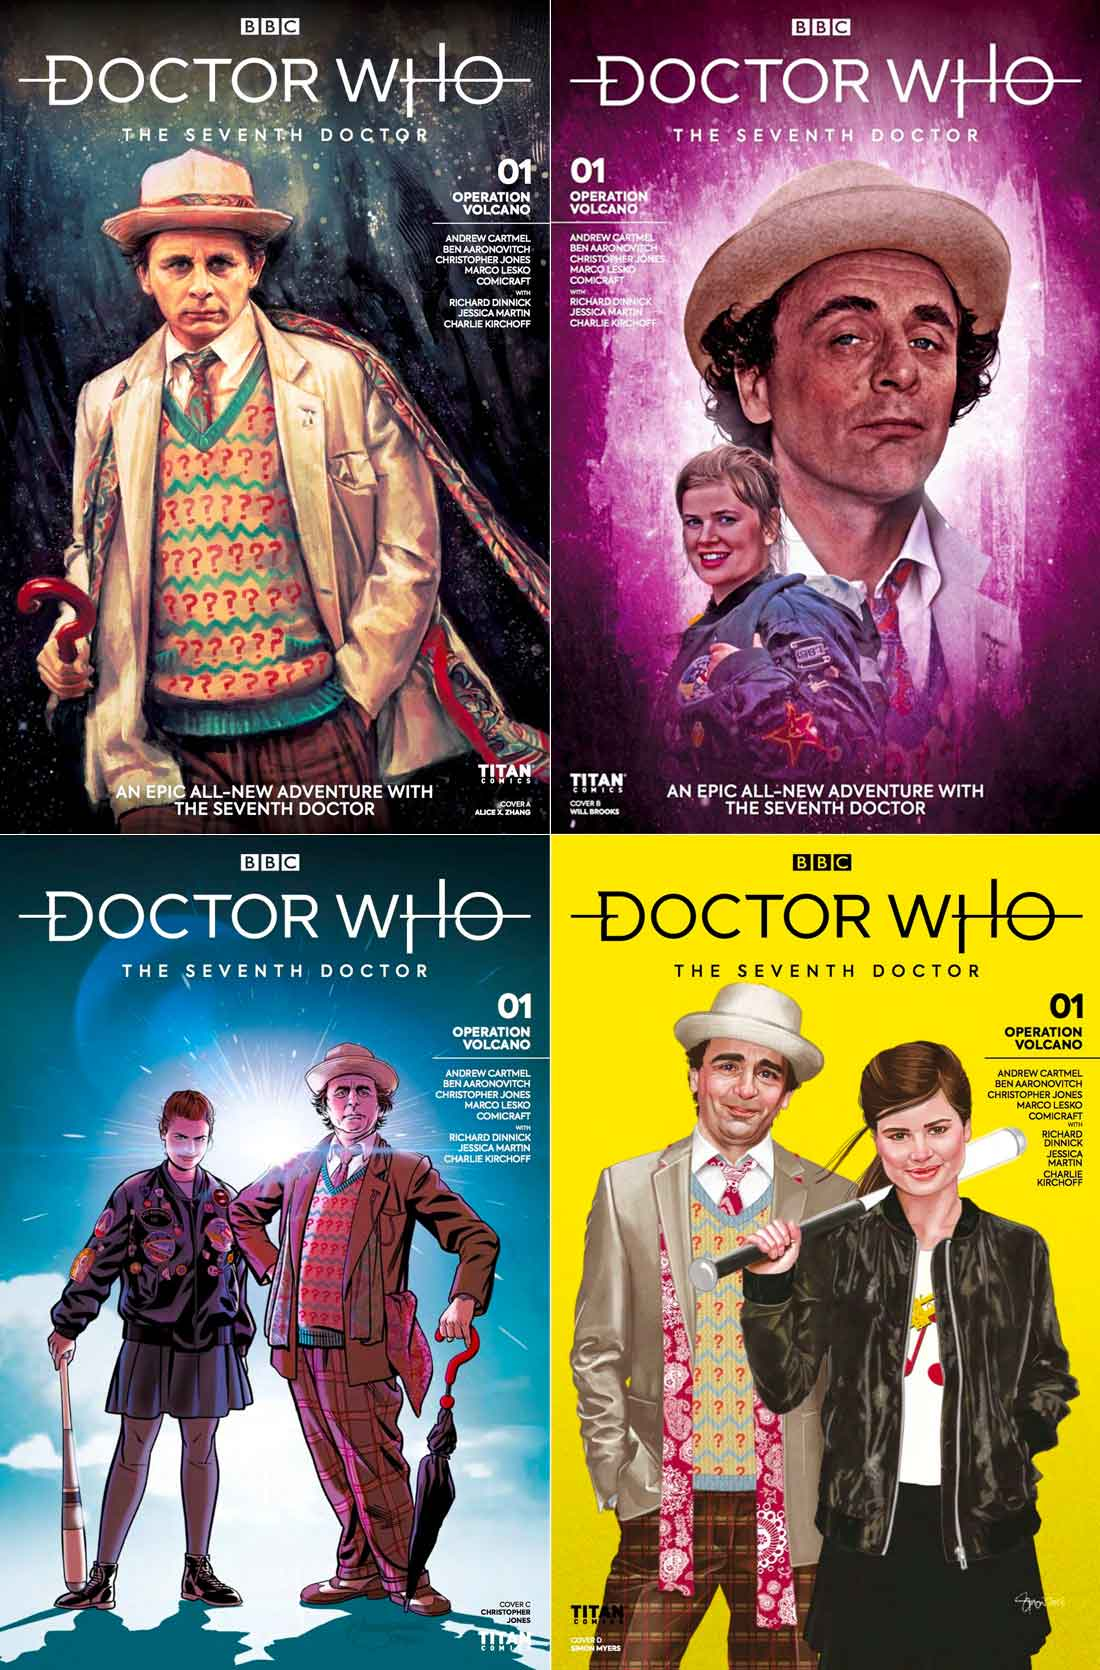 The alternate cover for Doctor Who - The Seventh Doctor: Operation Volcano